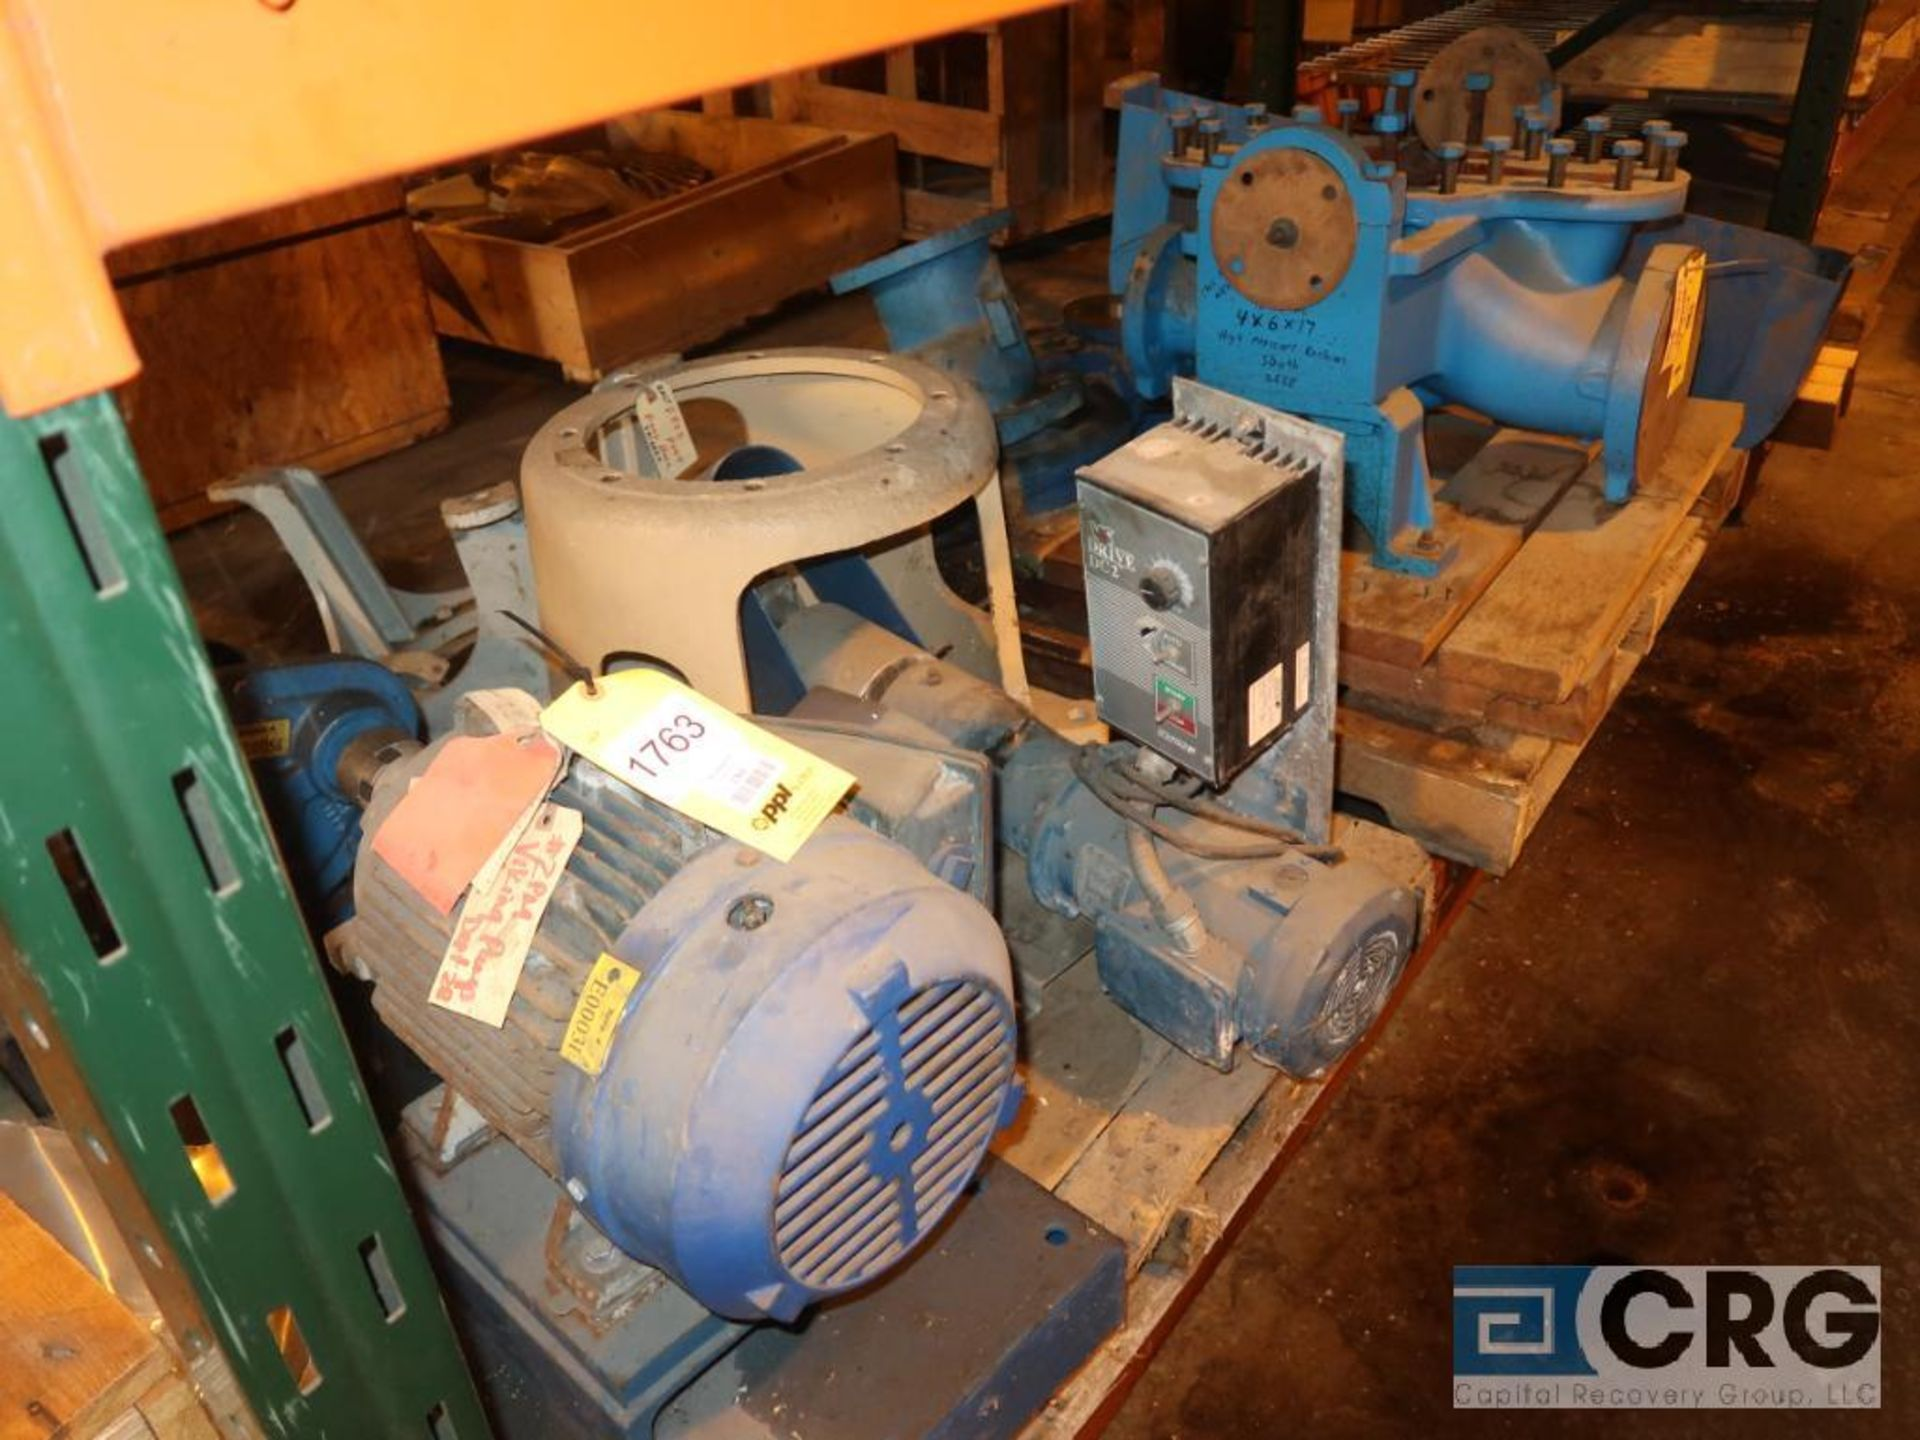 Lot of assorted parts including expansion joint, valves, fan blade, and rotors (Next Bay Cage Area) - Image 10 of 15